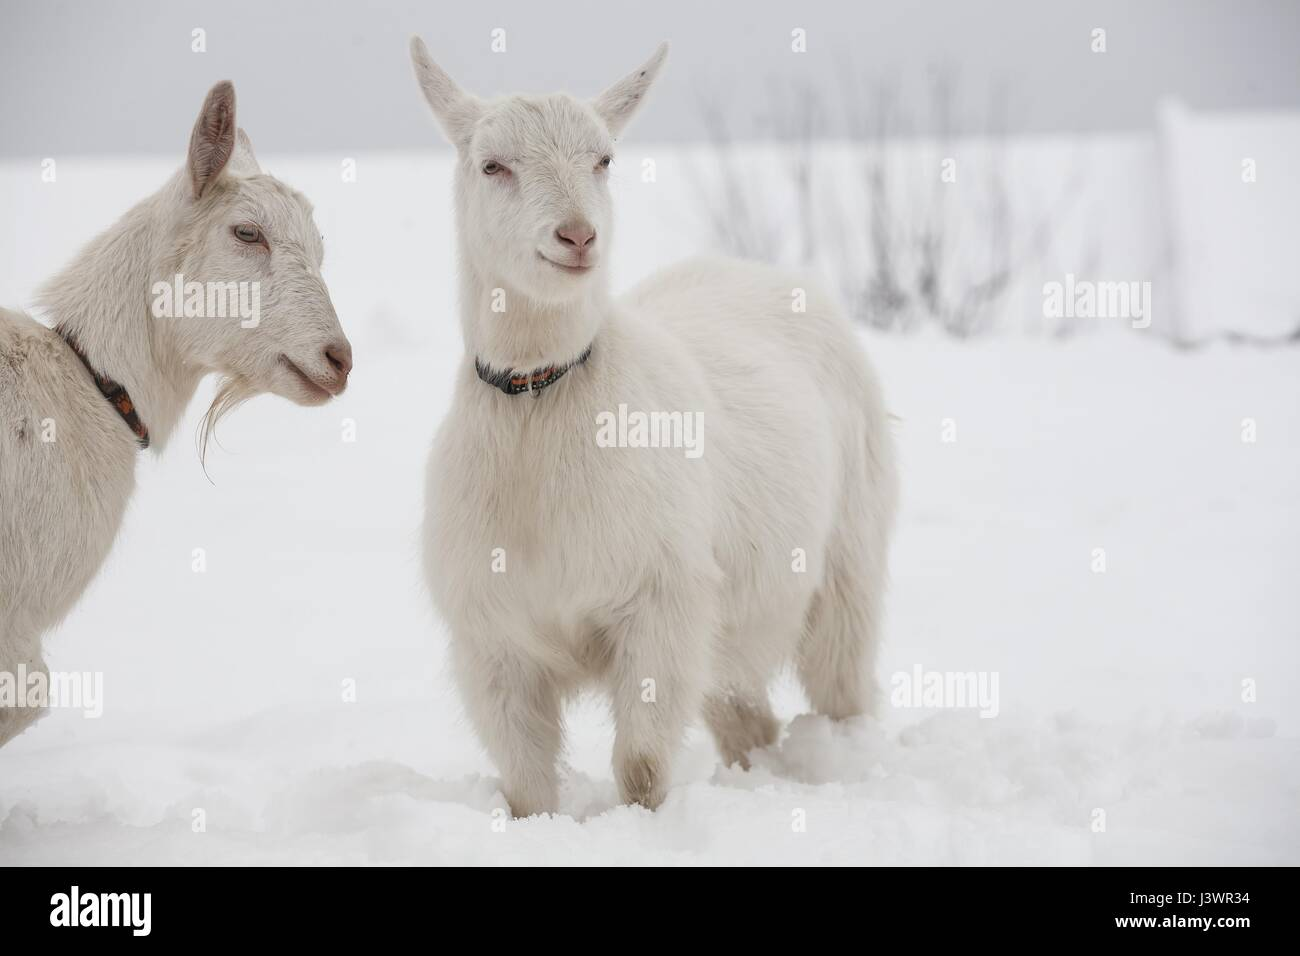 White goats in winter - Stock Image